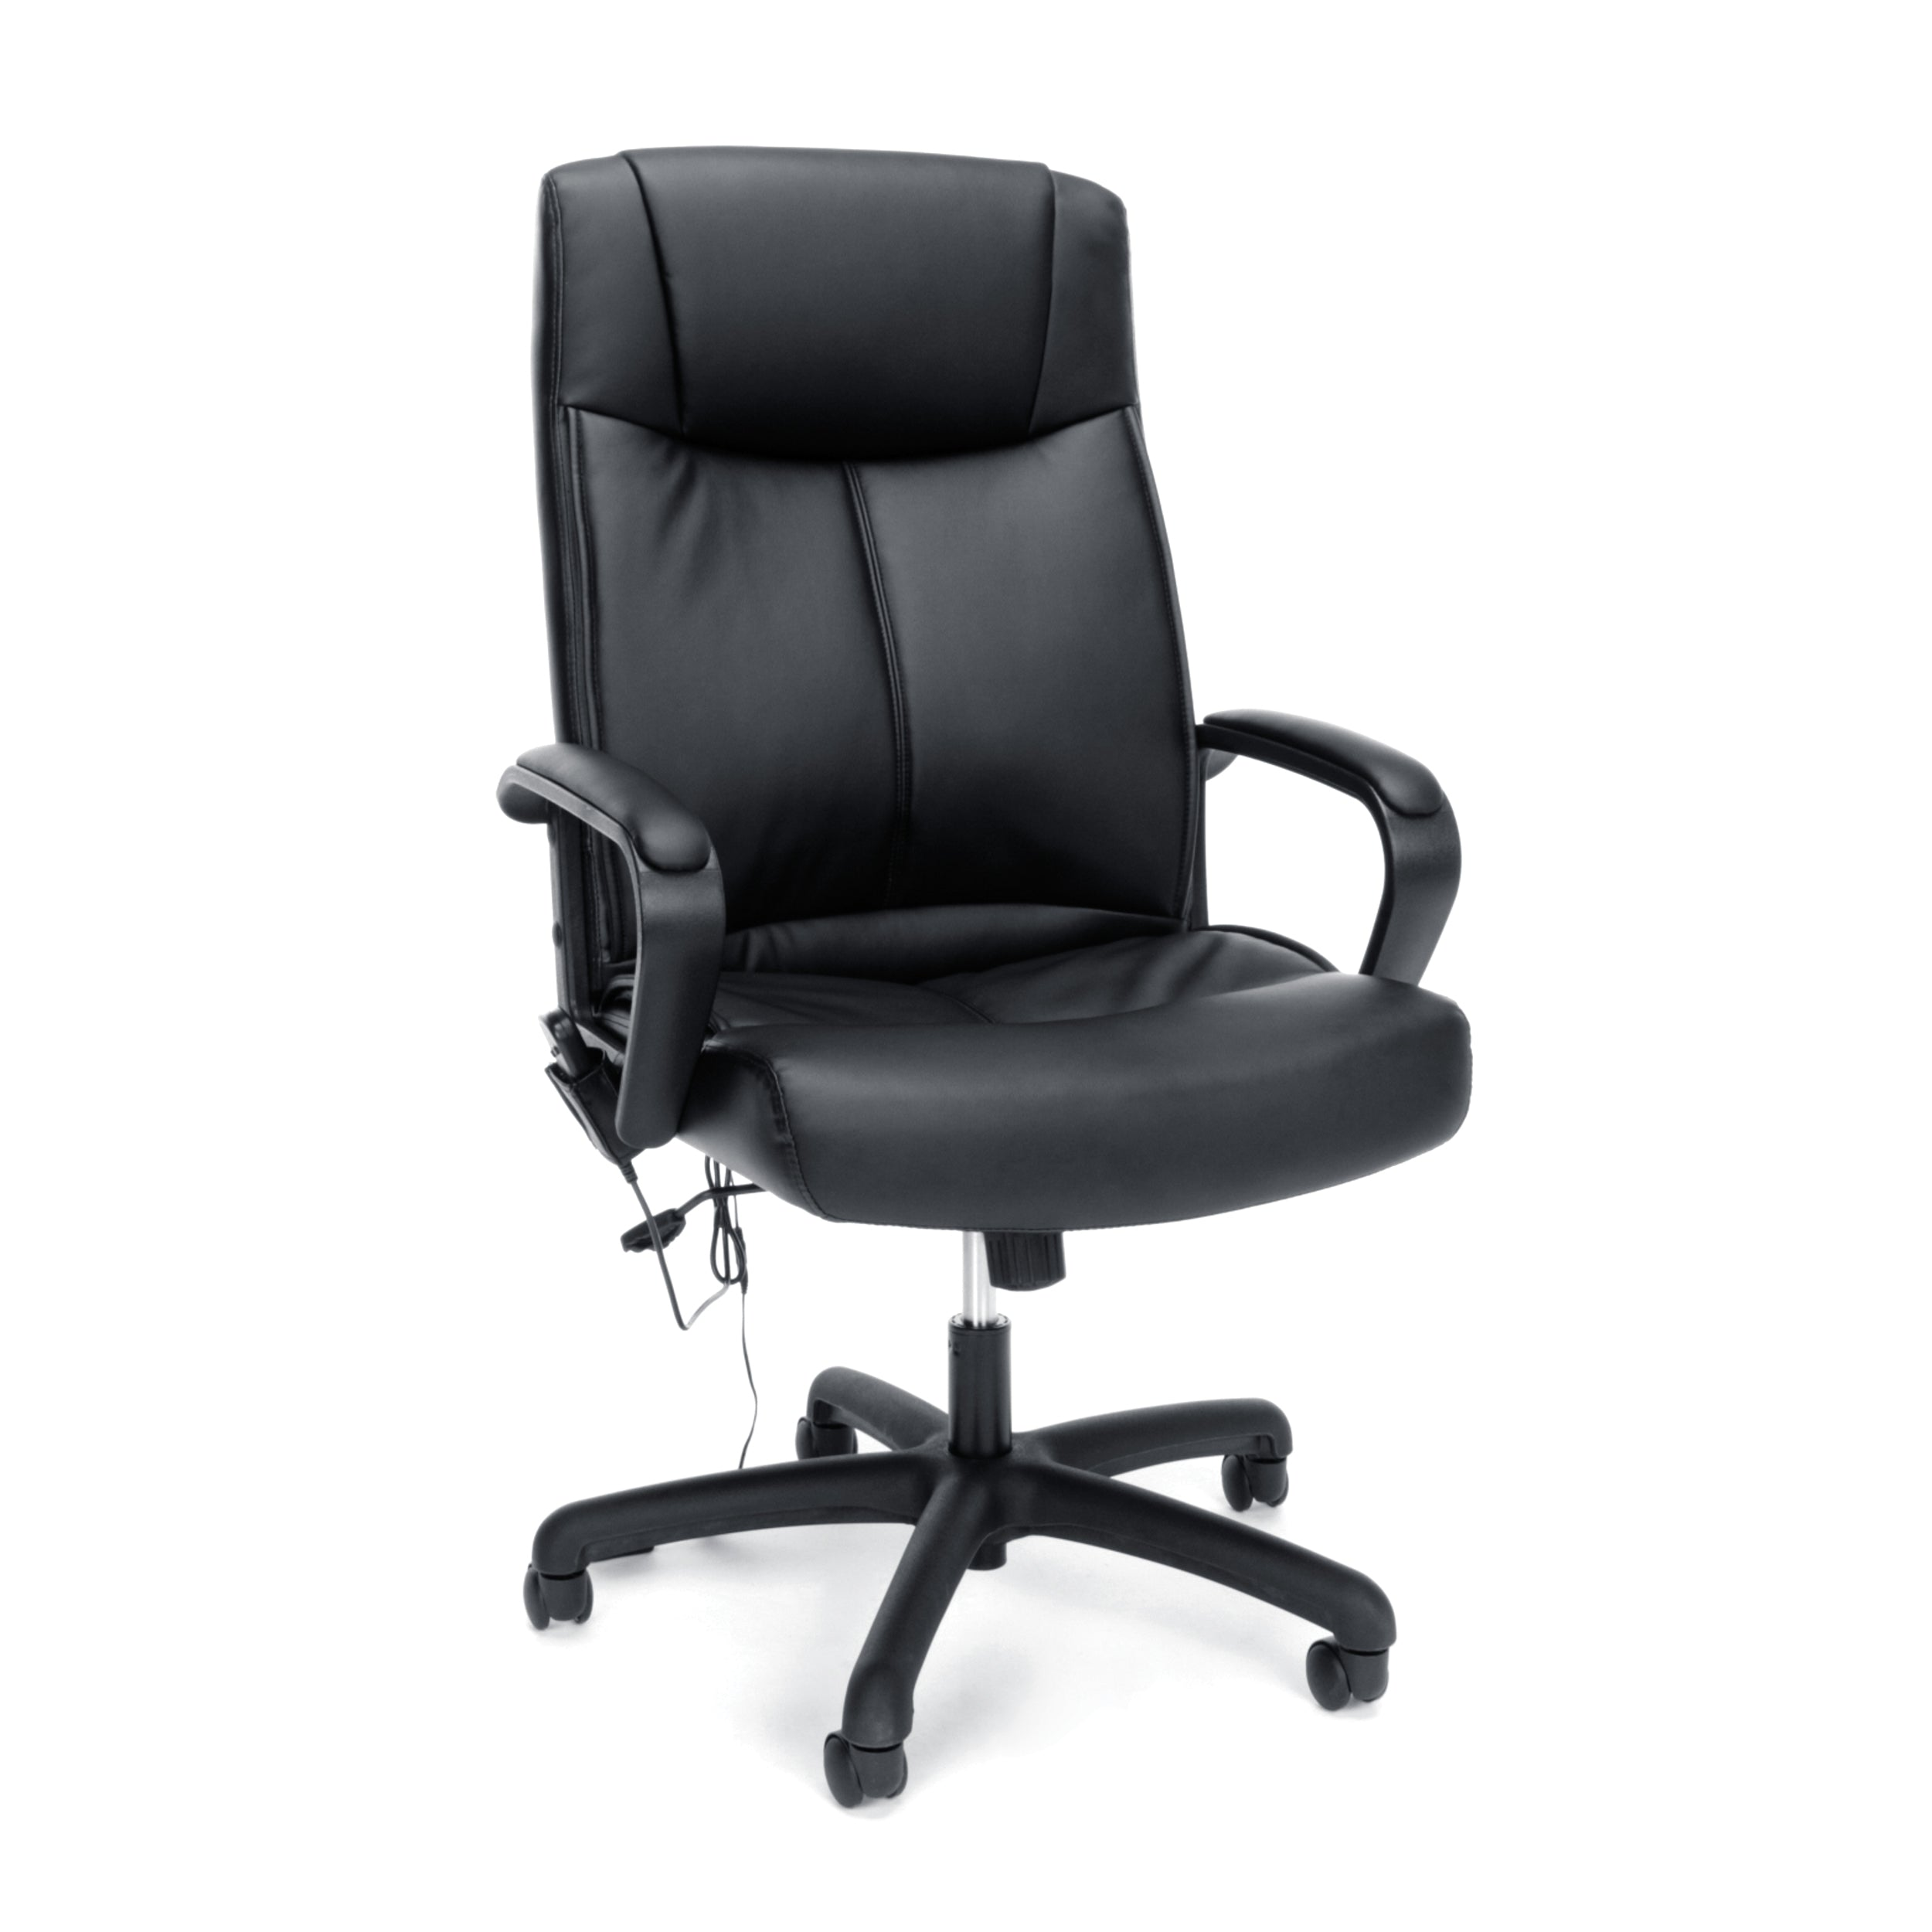 Essentials by OFM Vibrating Massage High-Back Leather Office Chair